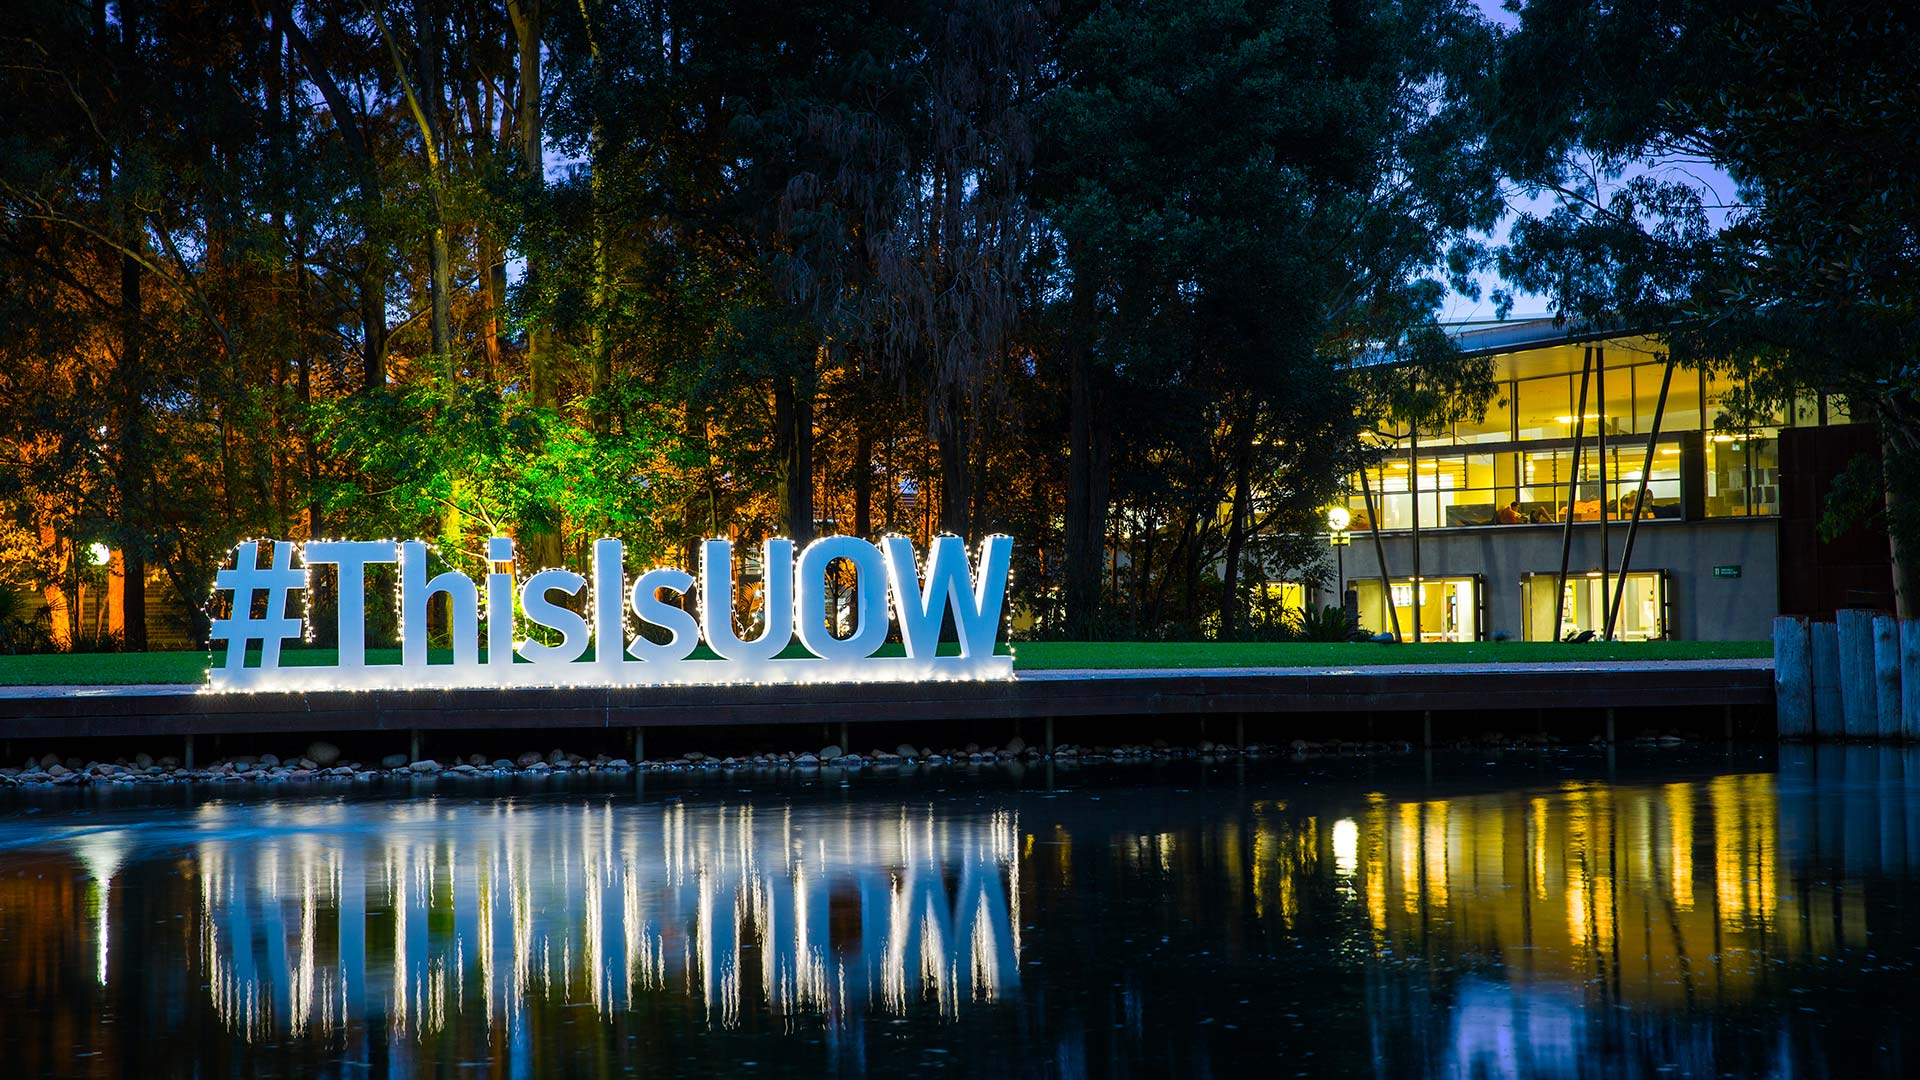 UOW Wollongong Campus duck pond lawn by night with #ThisIsUOW